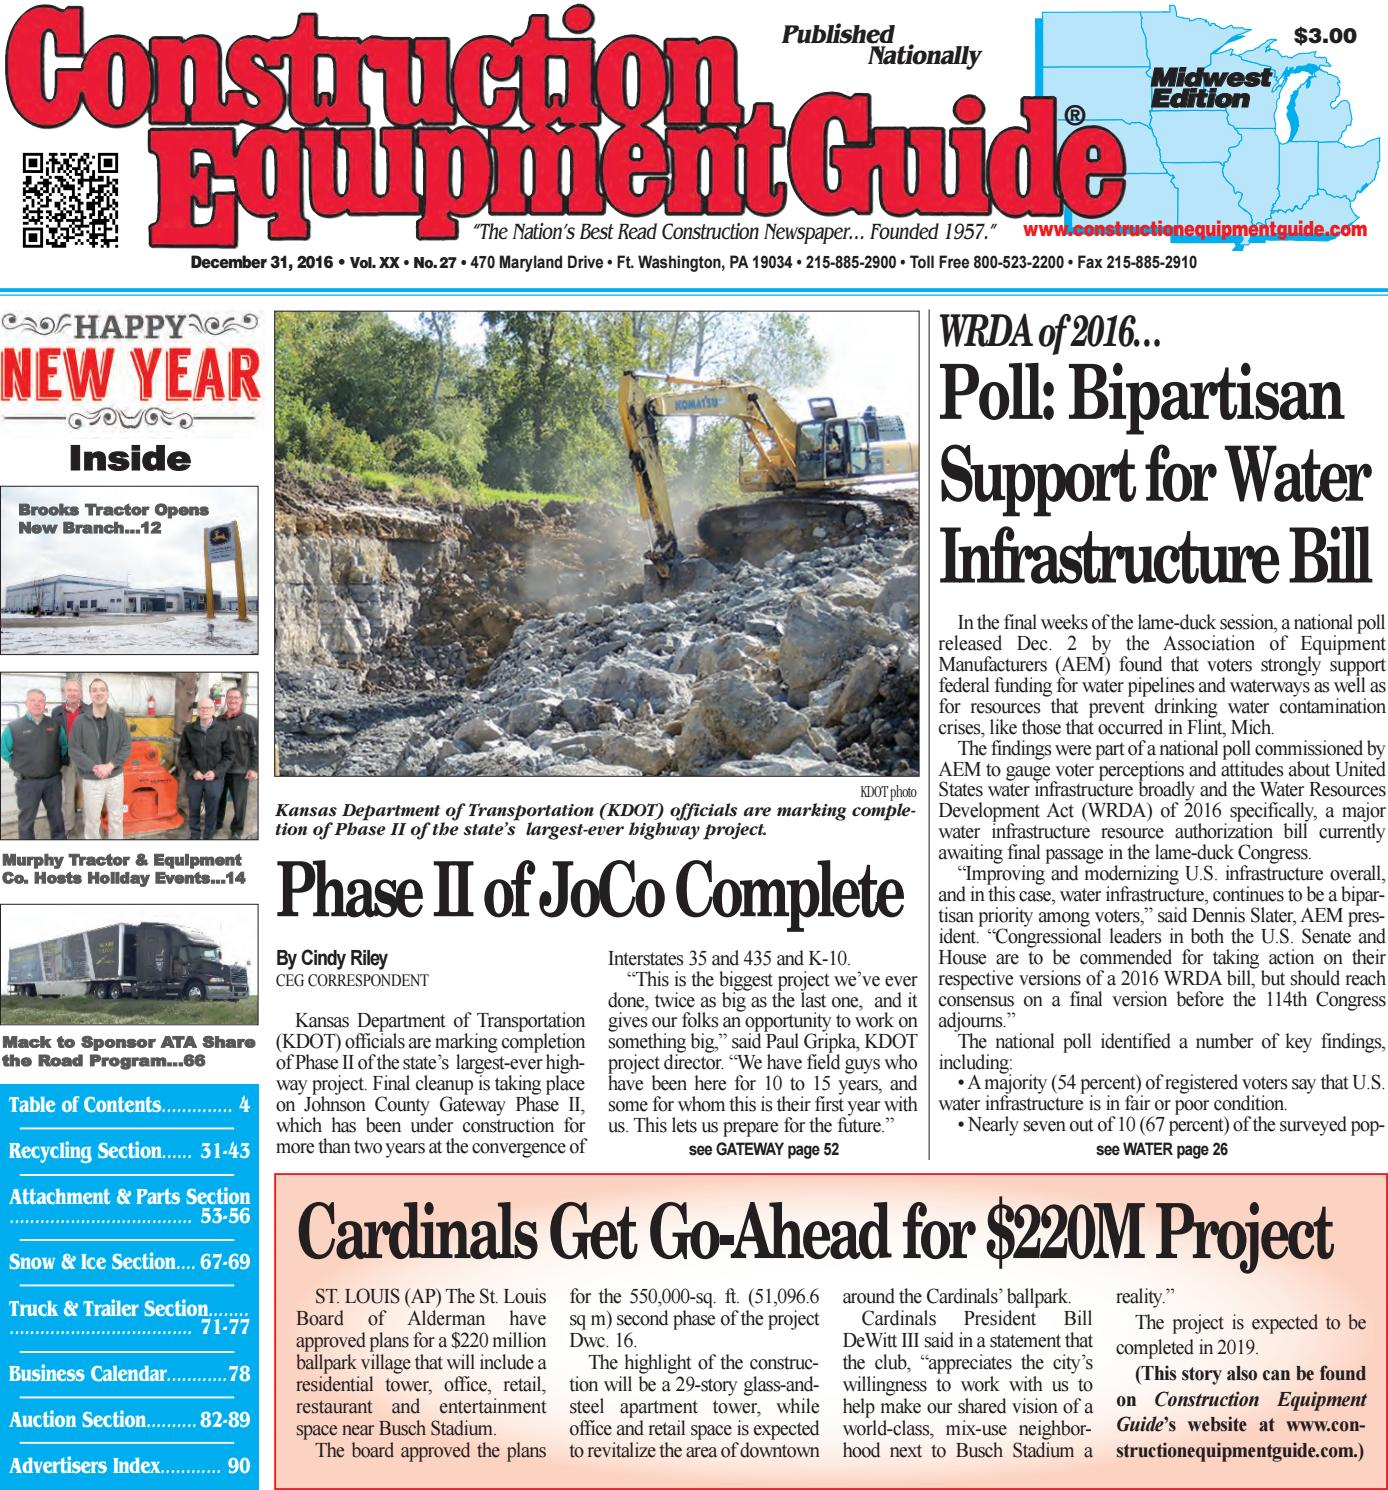 Midwest 27 December 31 2016 by Construction Equipment Guide issuu